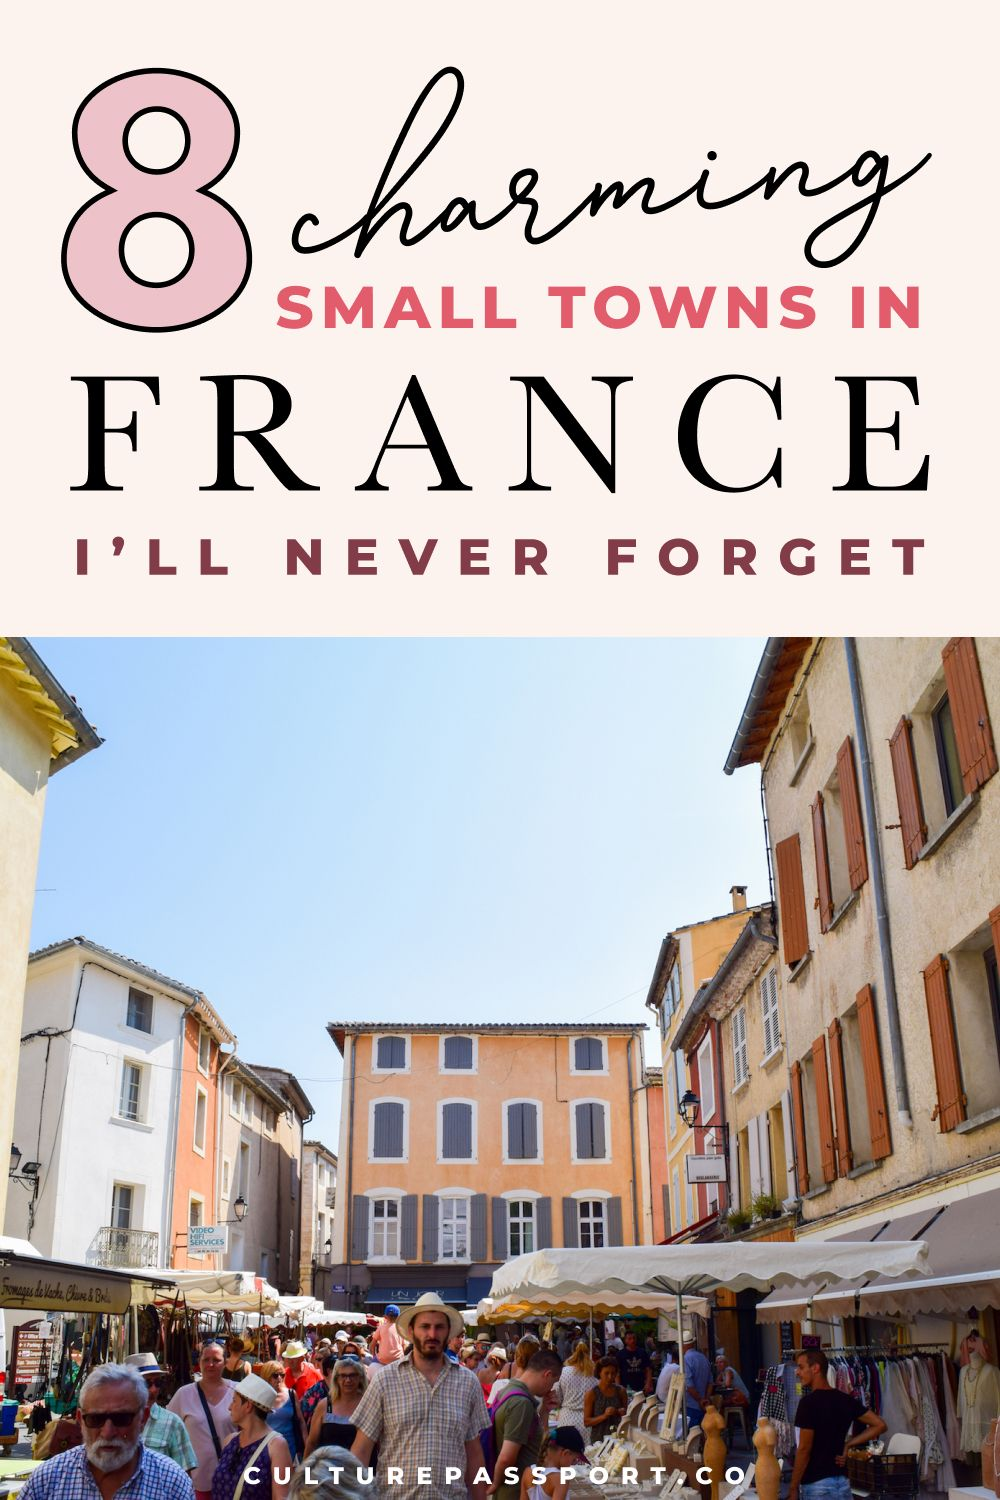 8 Charming Small Towns In France I'll Never Forget